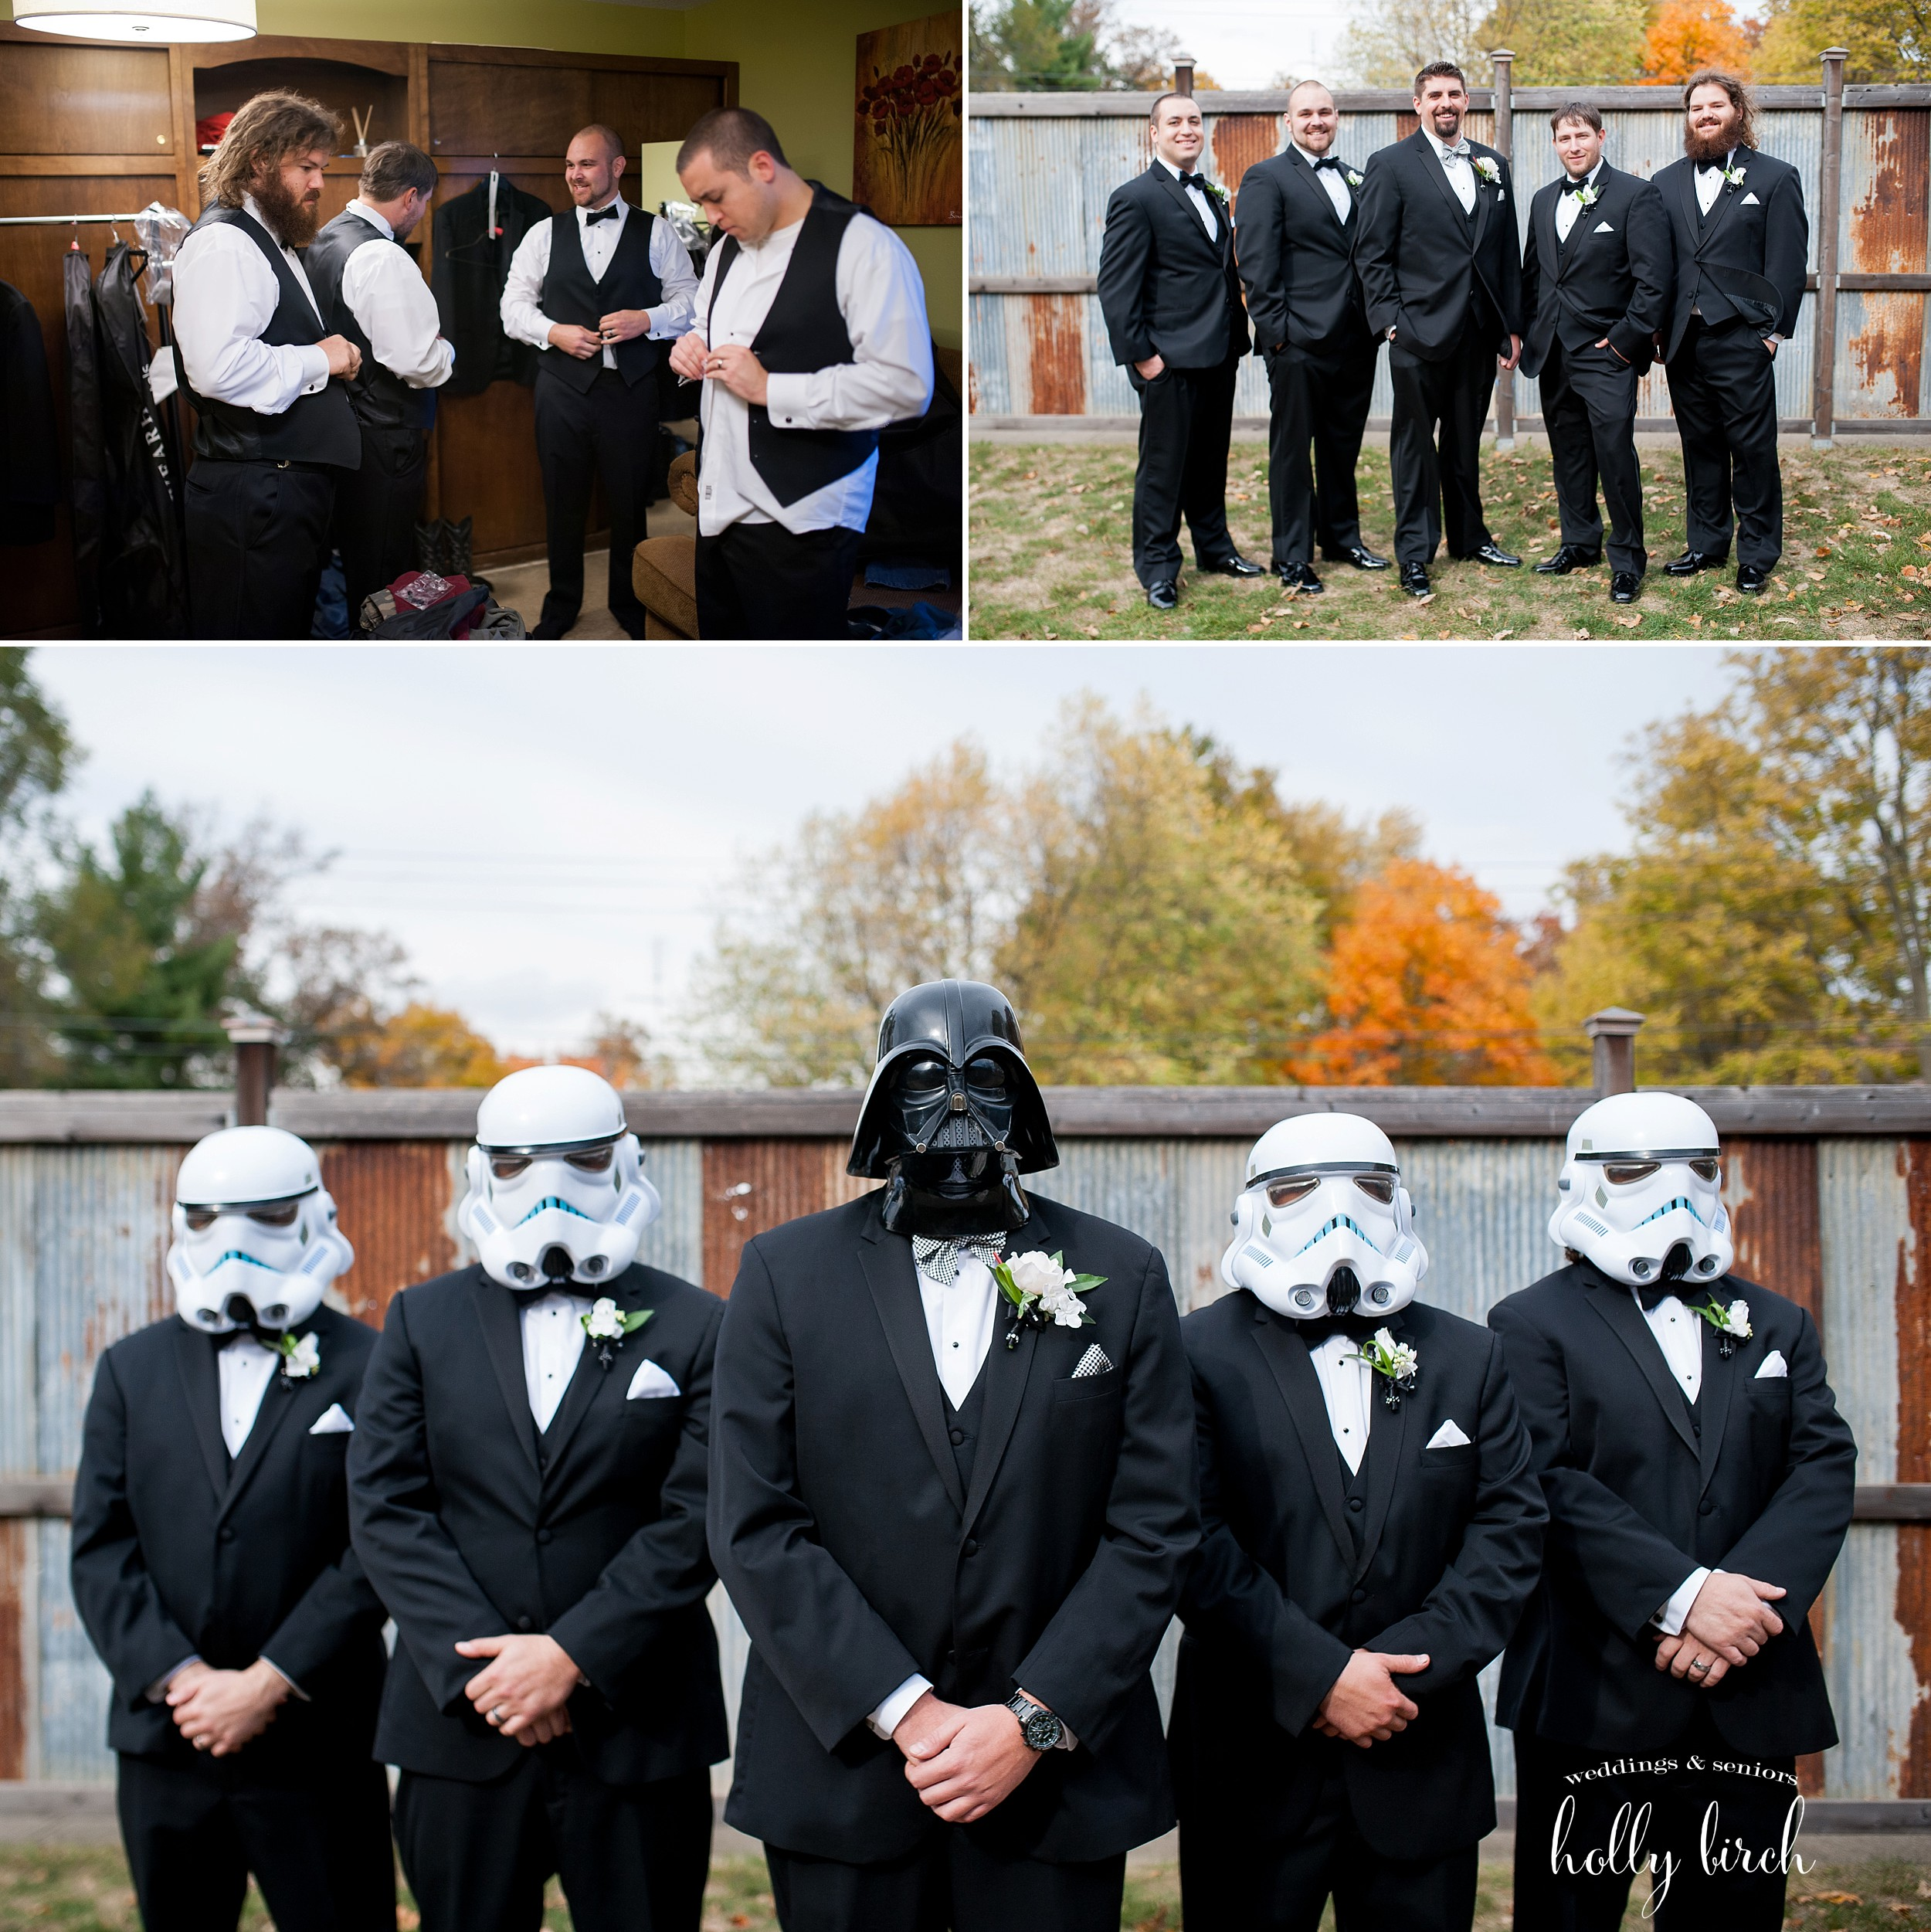 Star Wars groomsmen with Darth Vader and stormtroopers